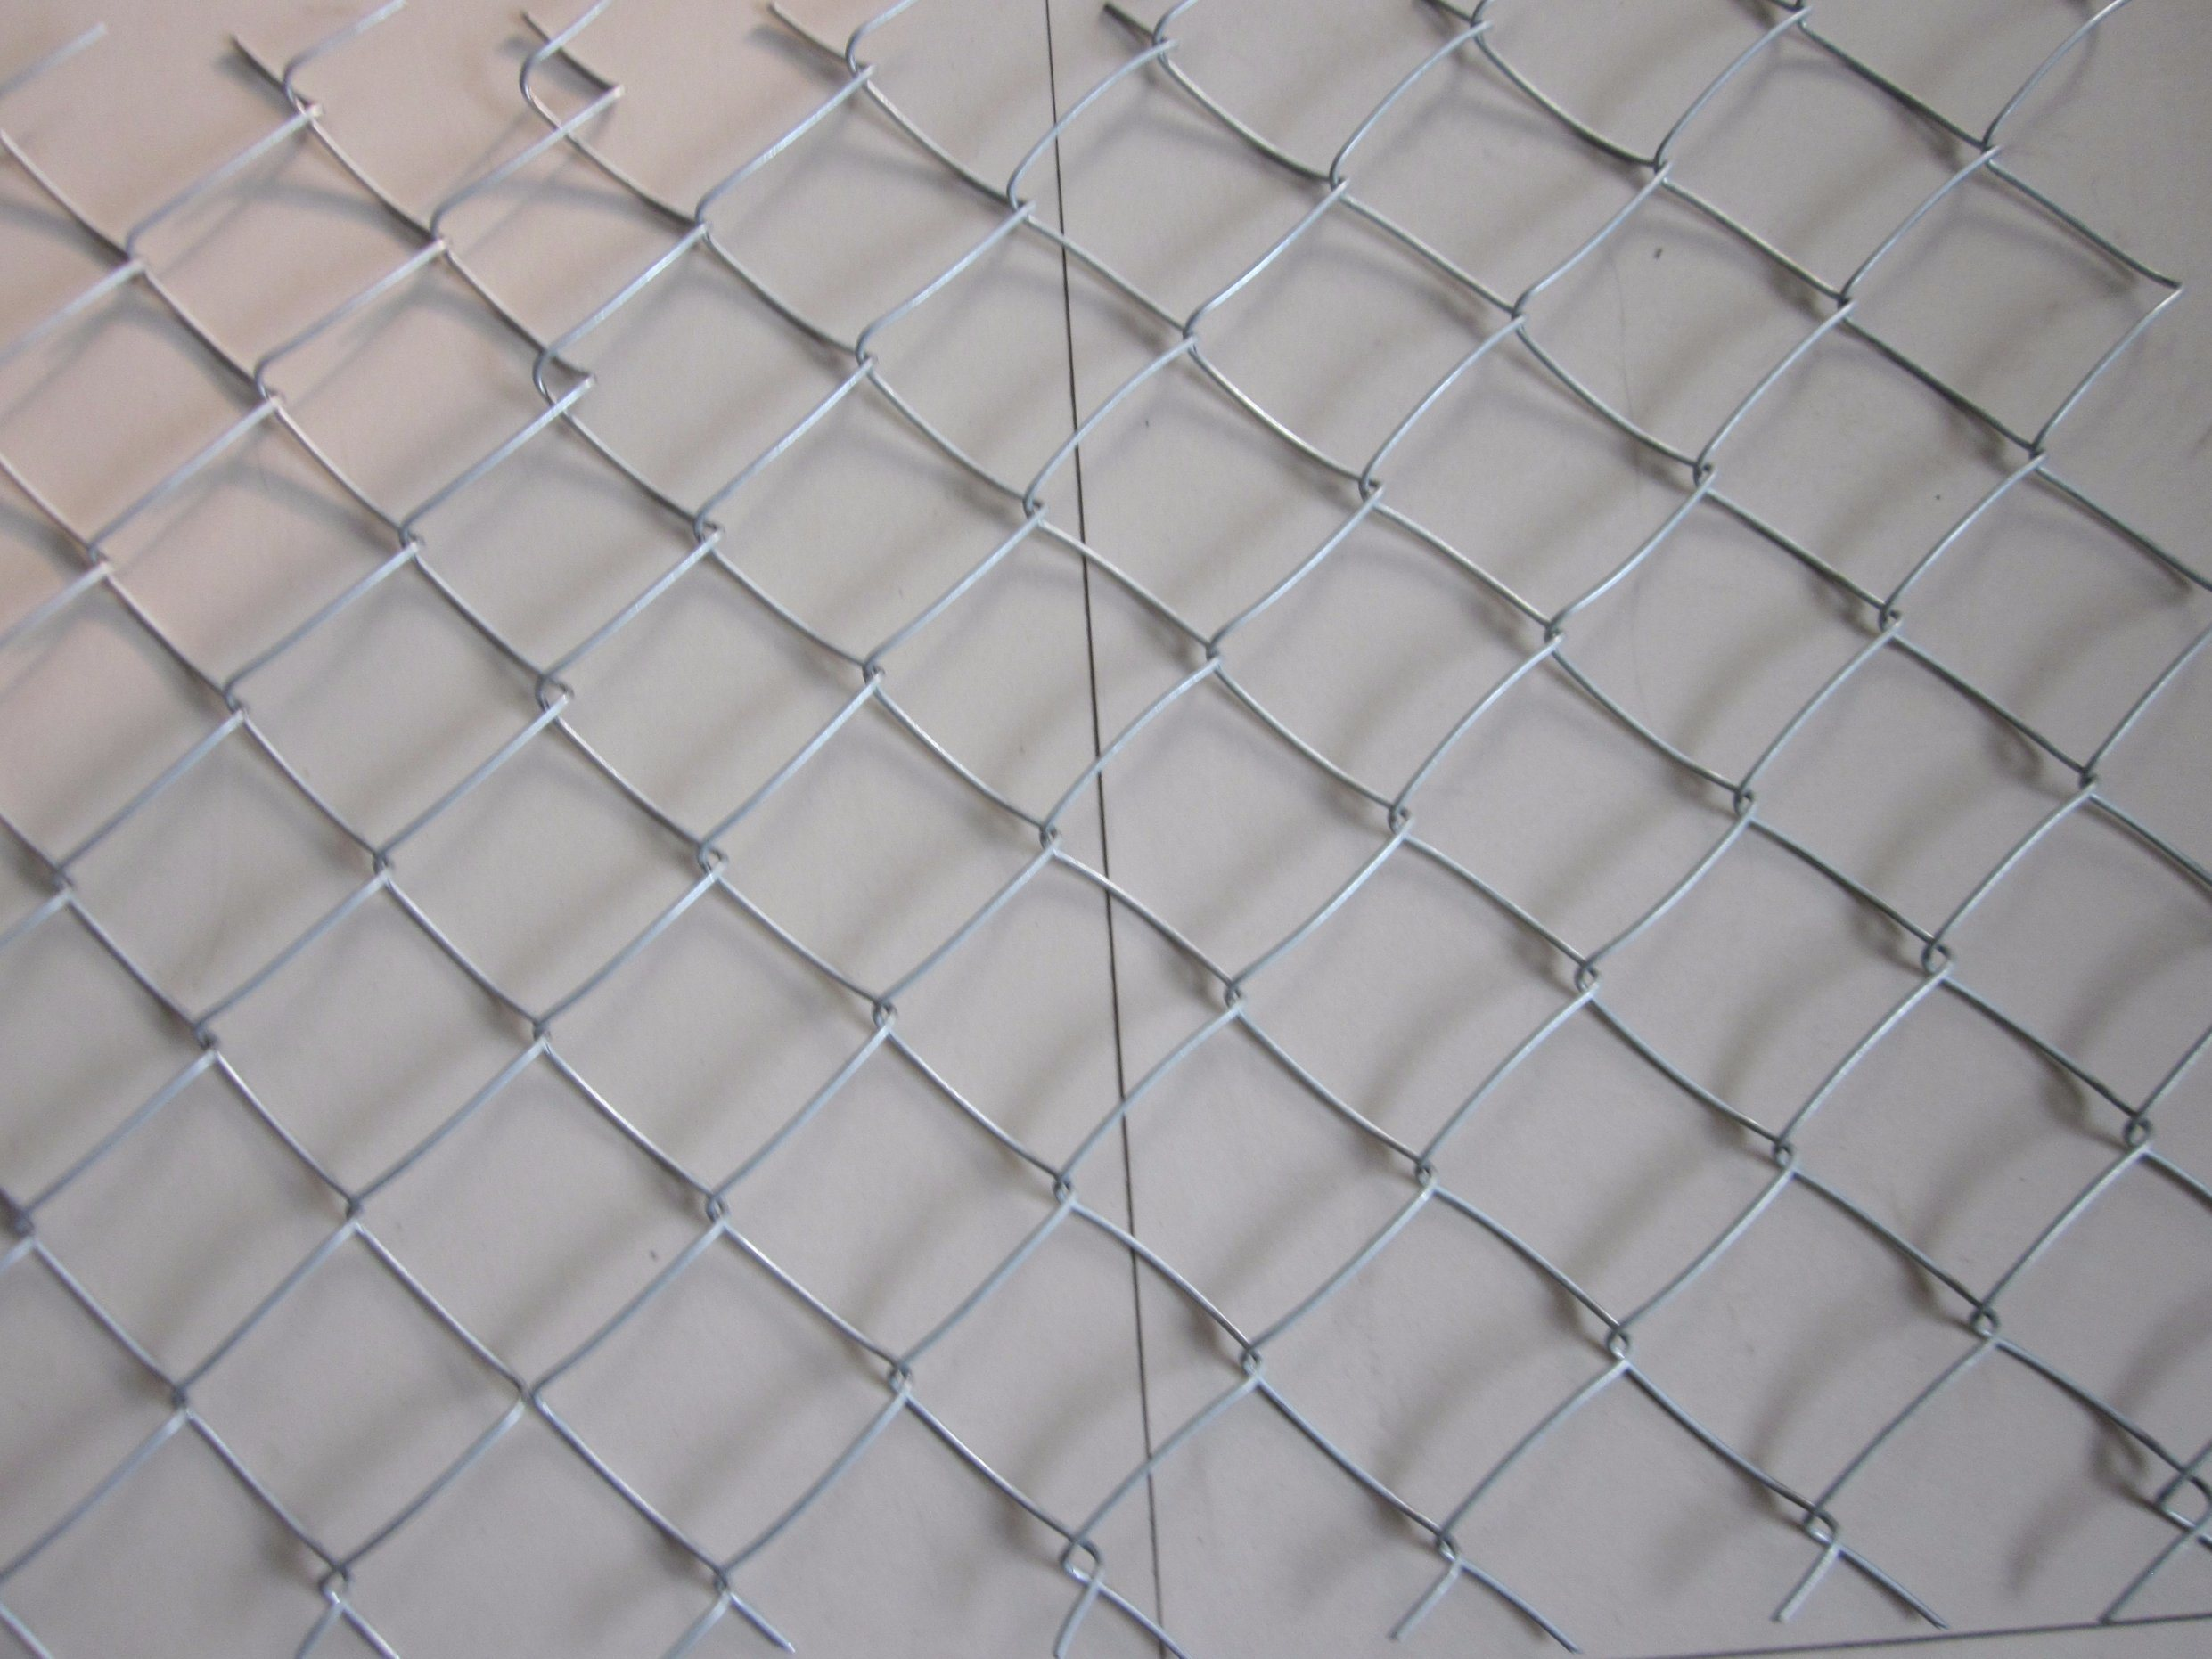 China Chain Link Fence for Africa Market - China Chain Link Fence, Fence